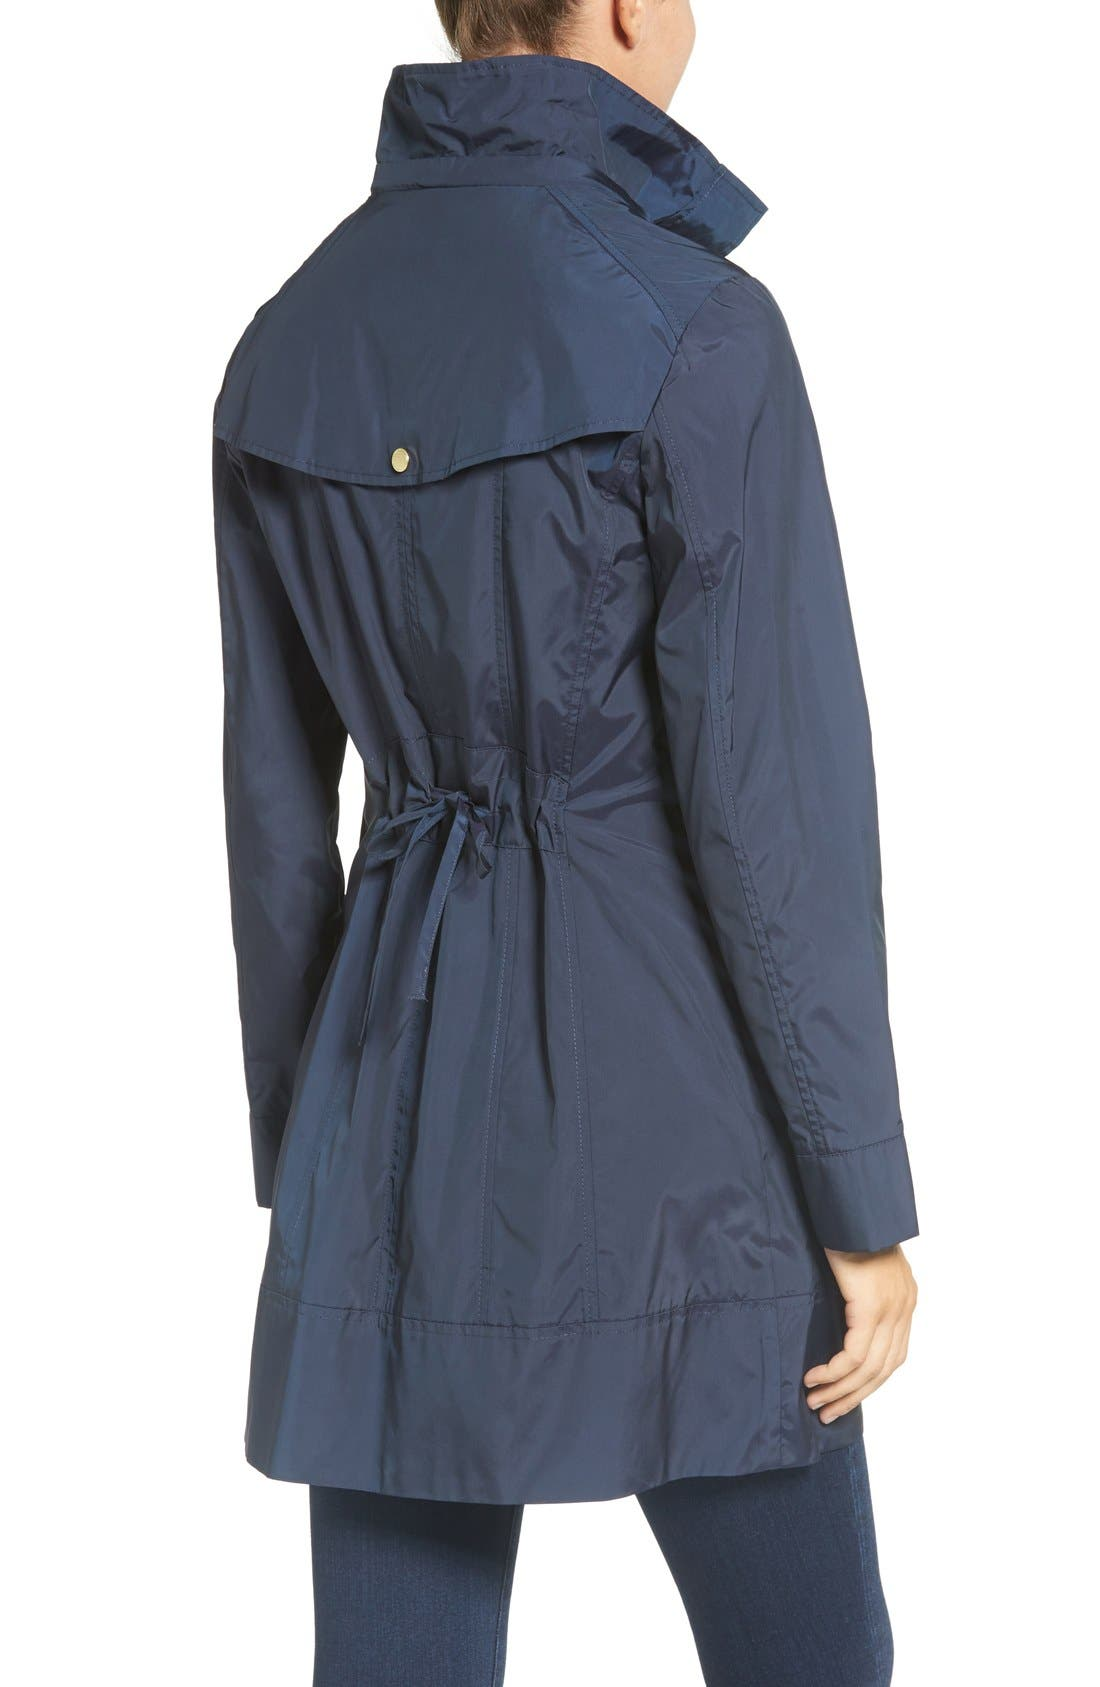 Alternate Image 2  - Cole Haan Signature Back Bow Packable Hooded Raincoat (Regular & Petite)